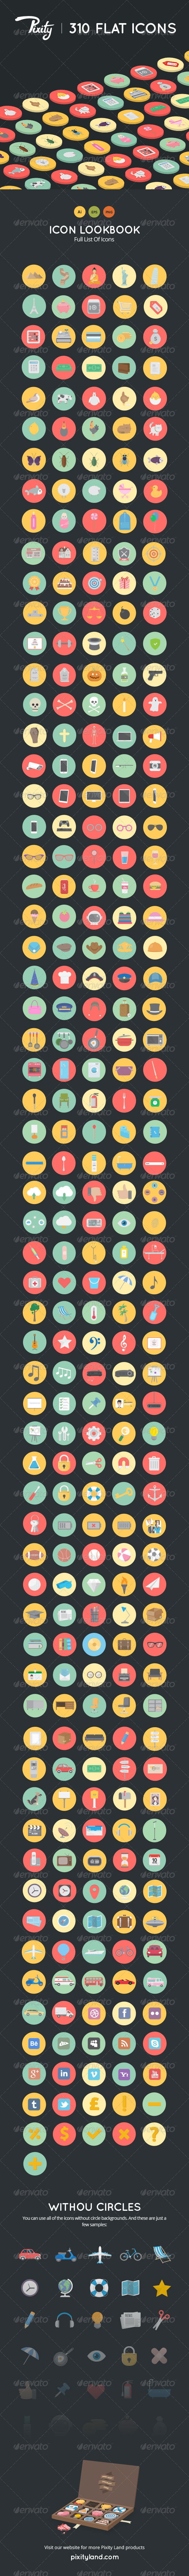 GraphicRiver Pixity 310 Flat Icons 7771249